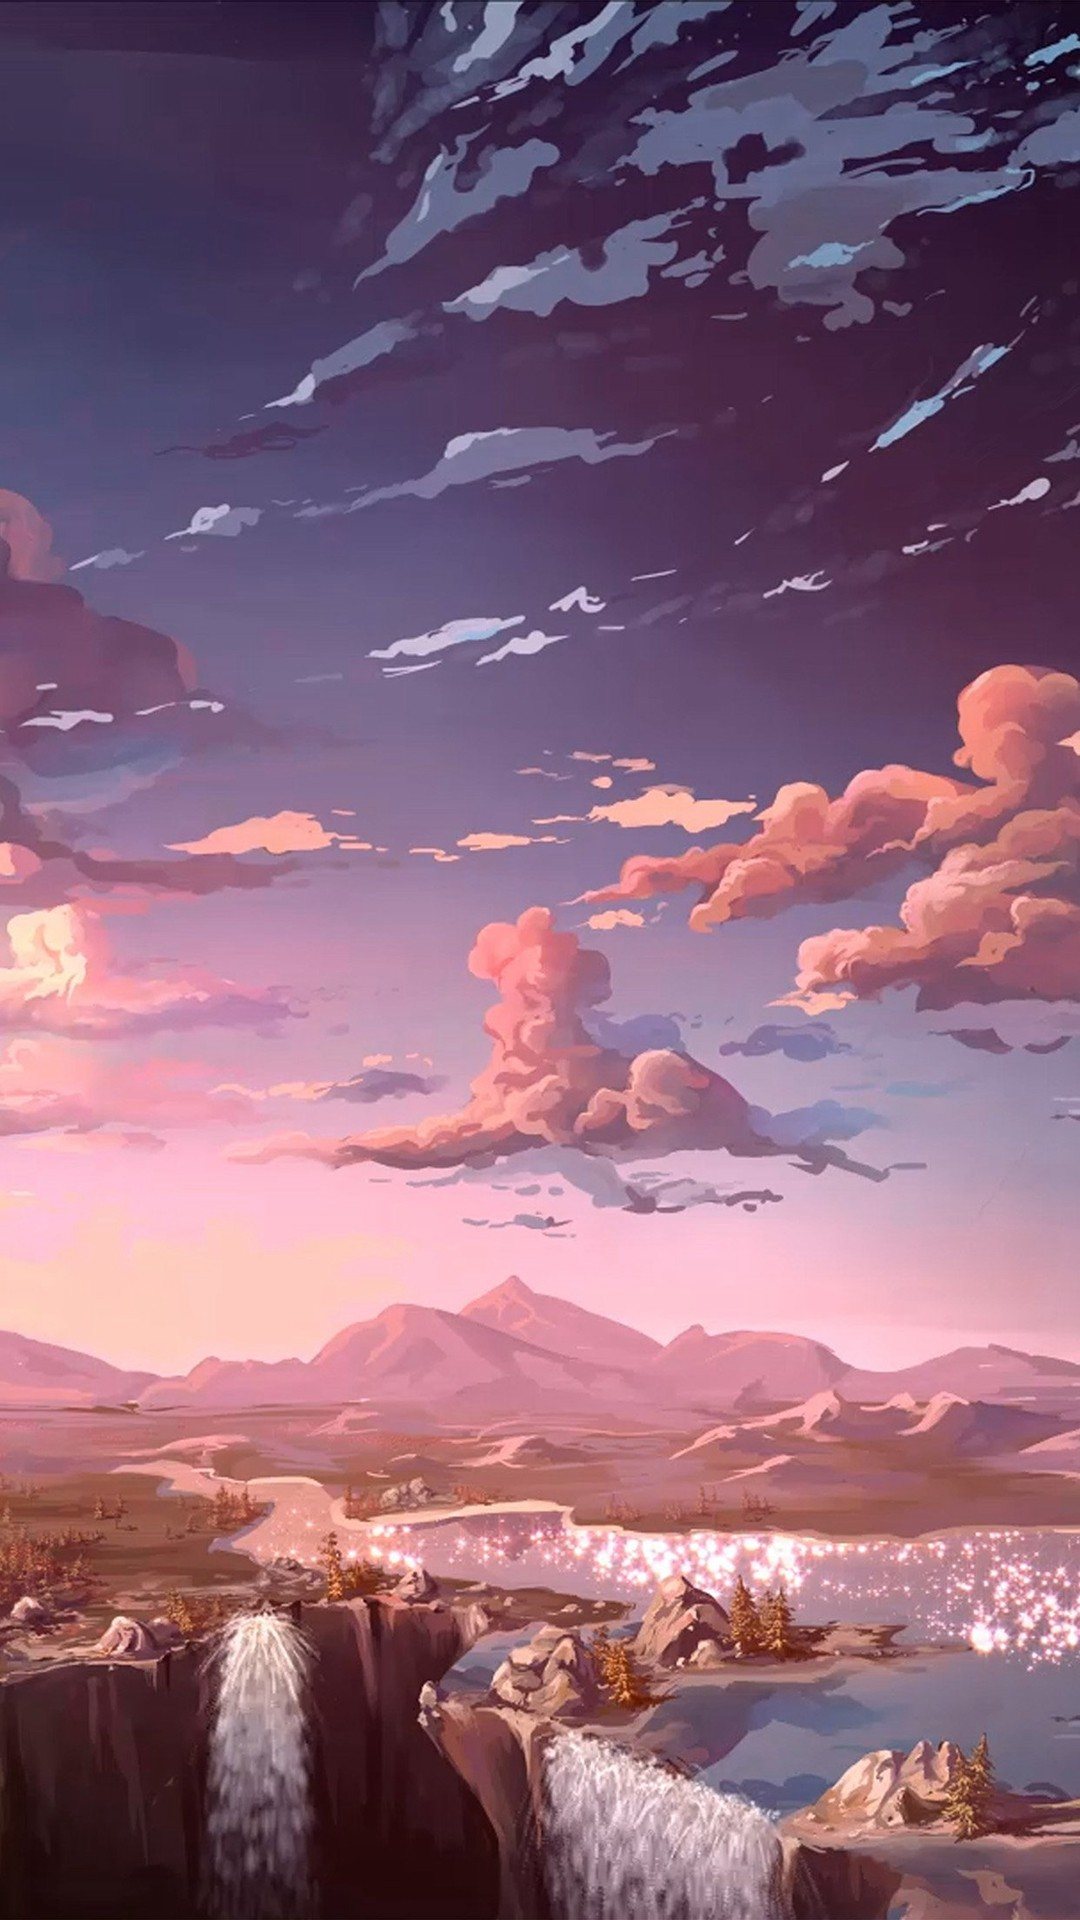 Anime City Wallpaper Download Free Beautiful Wallpapers For